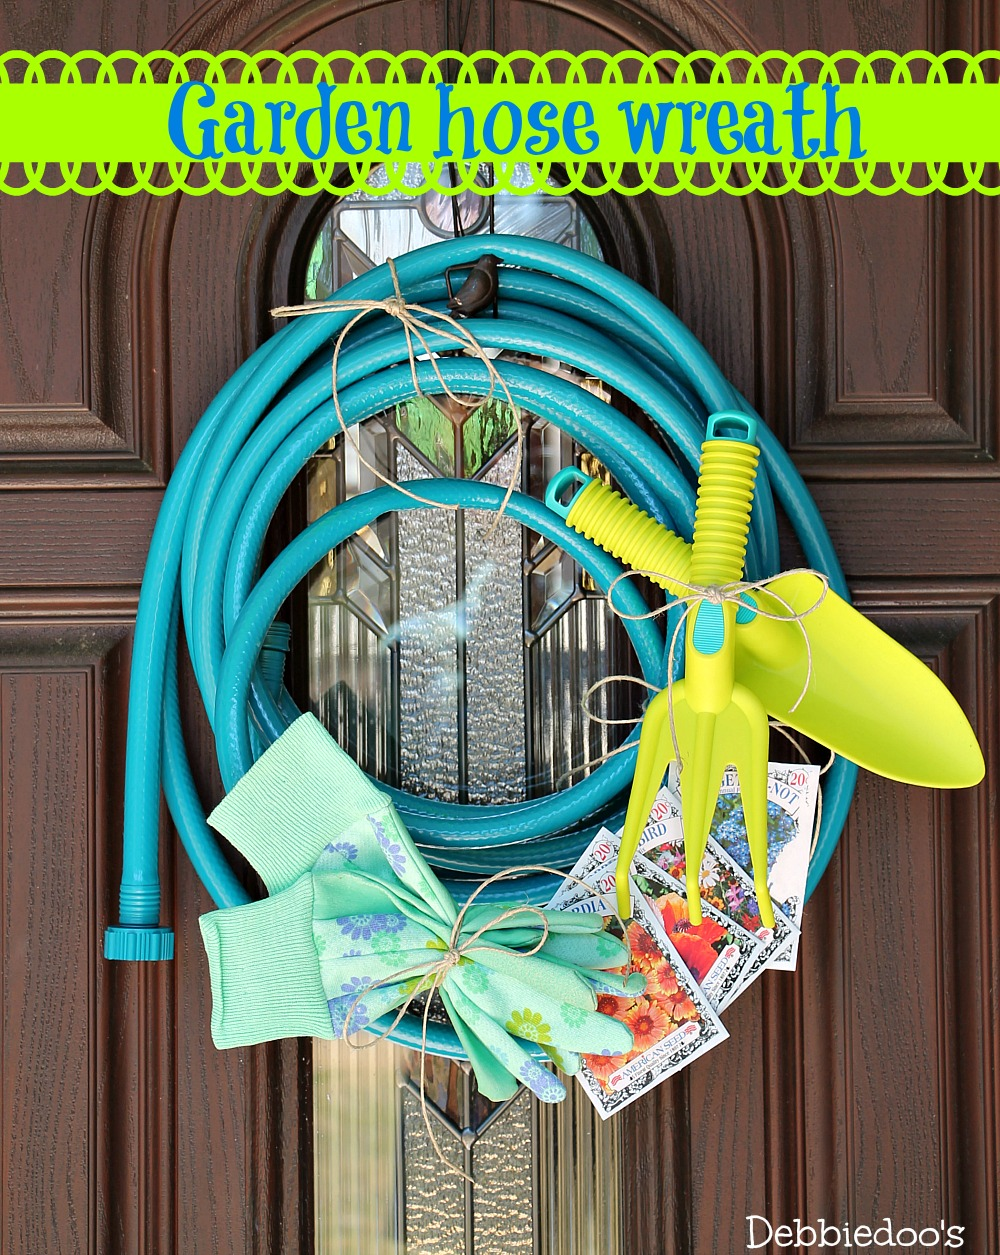 Spray painted garden hose wreath